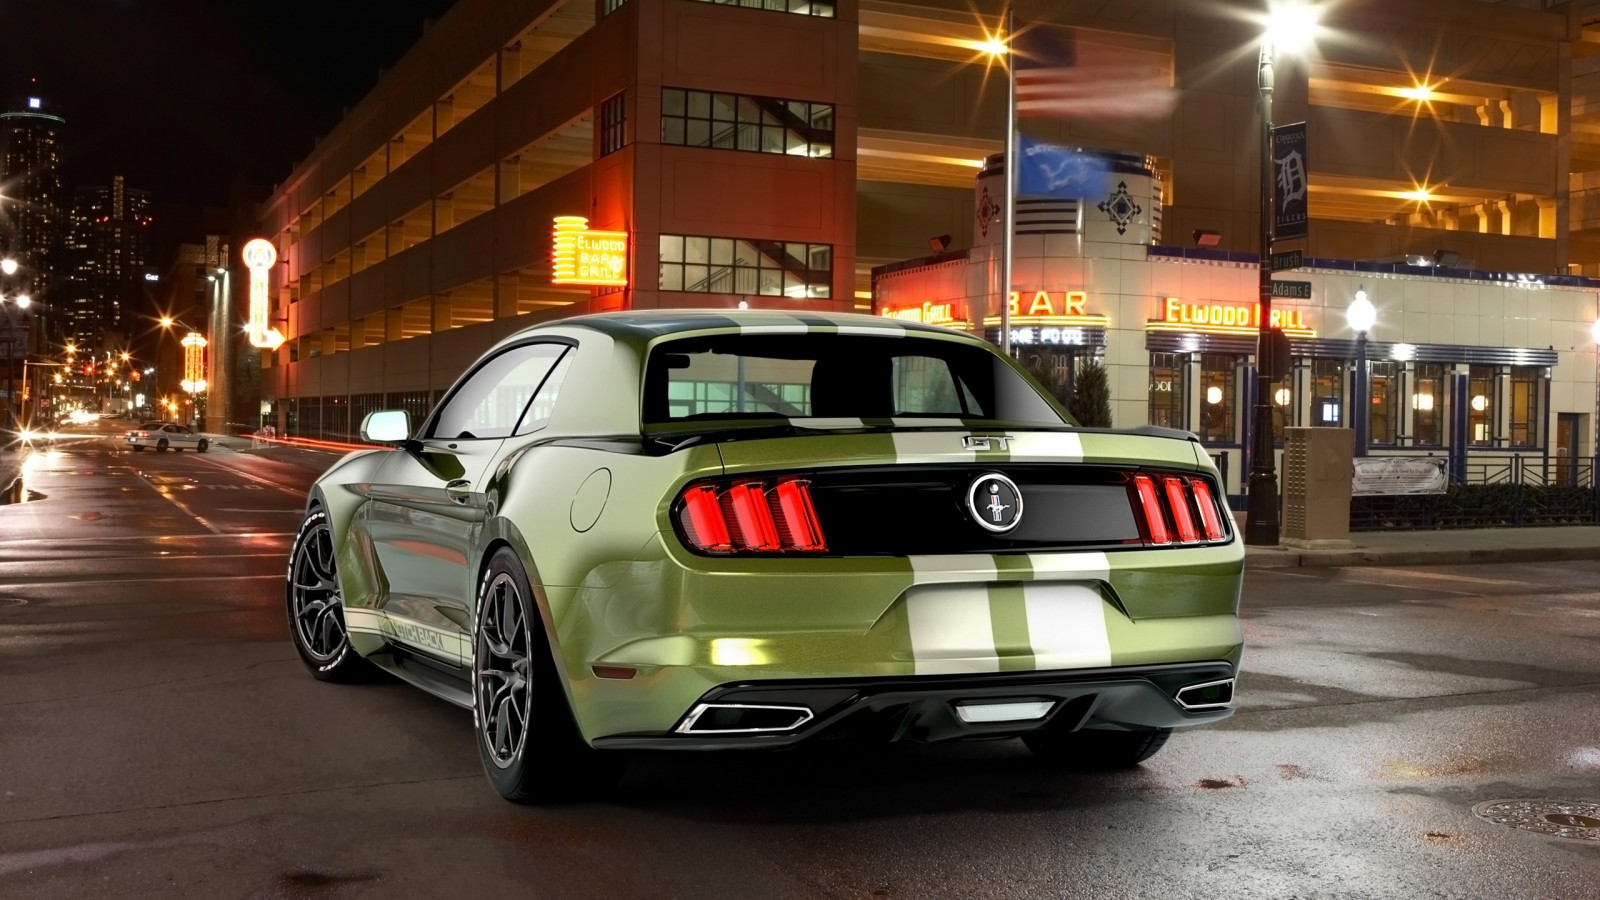 Mustang Wallpaper Iphone X 2017 Ford Mustang Notchback Design 2 Wallpaper Hd Car